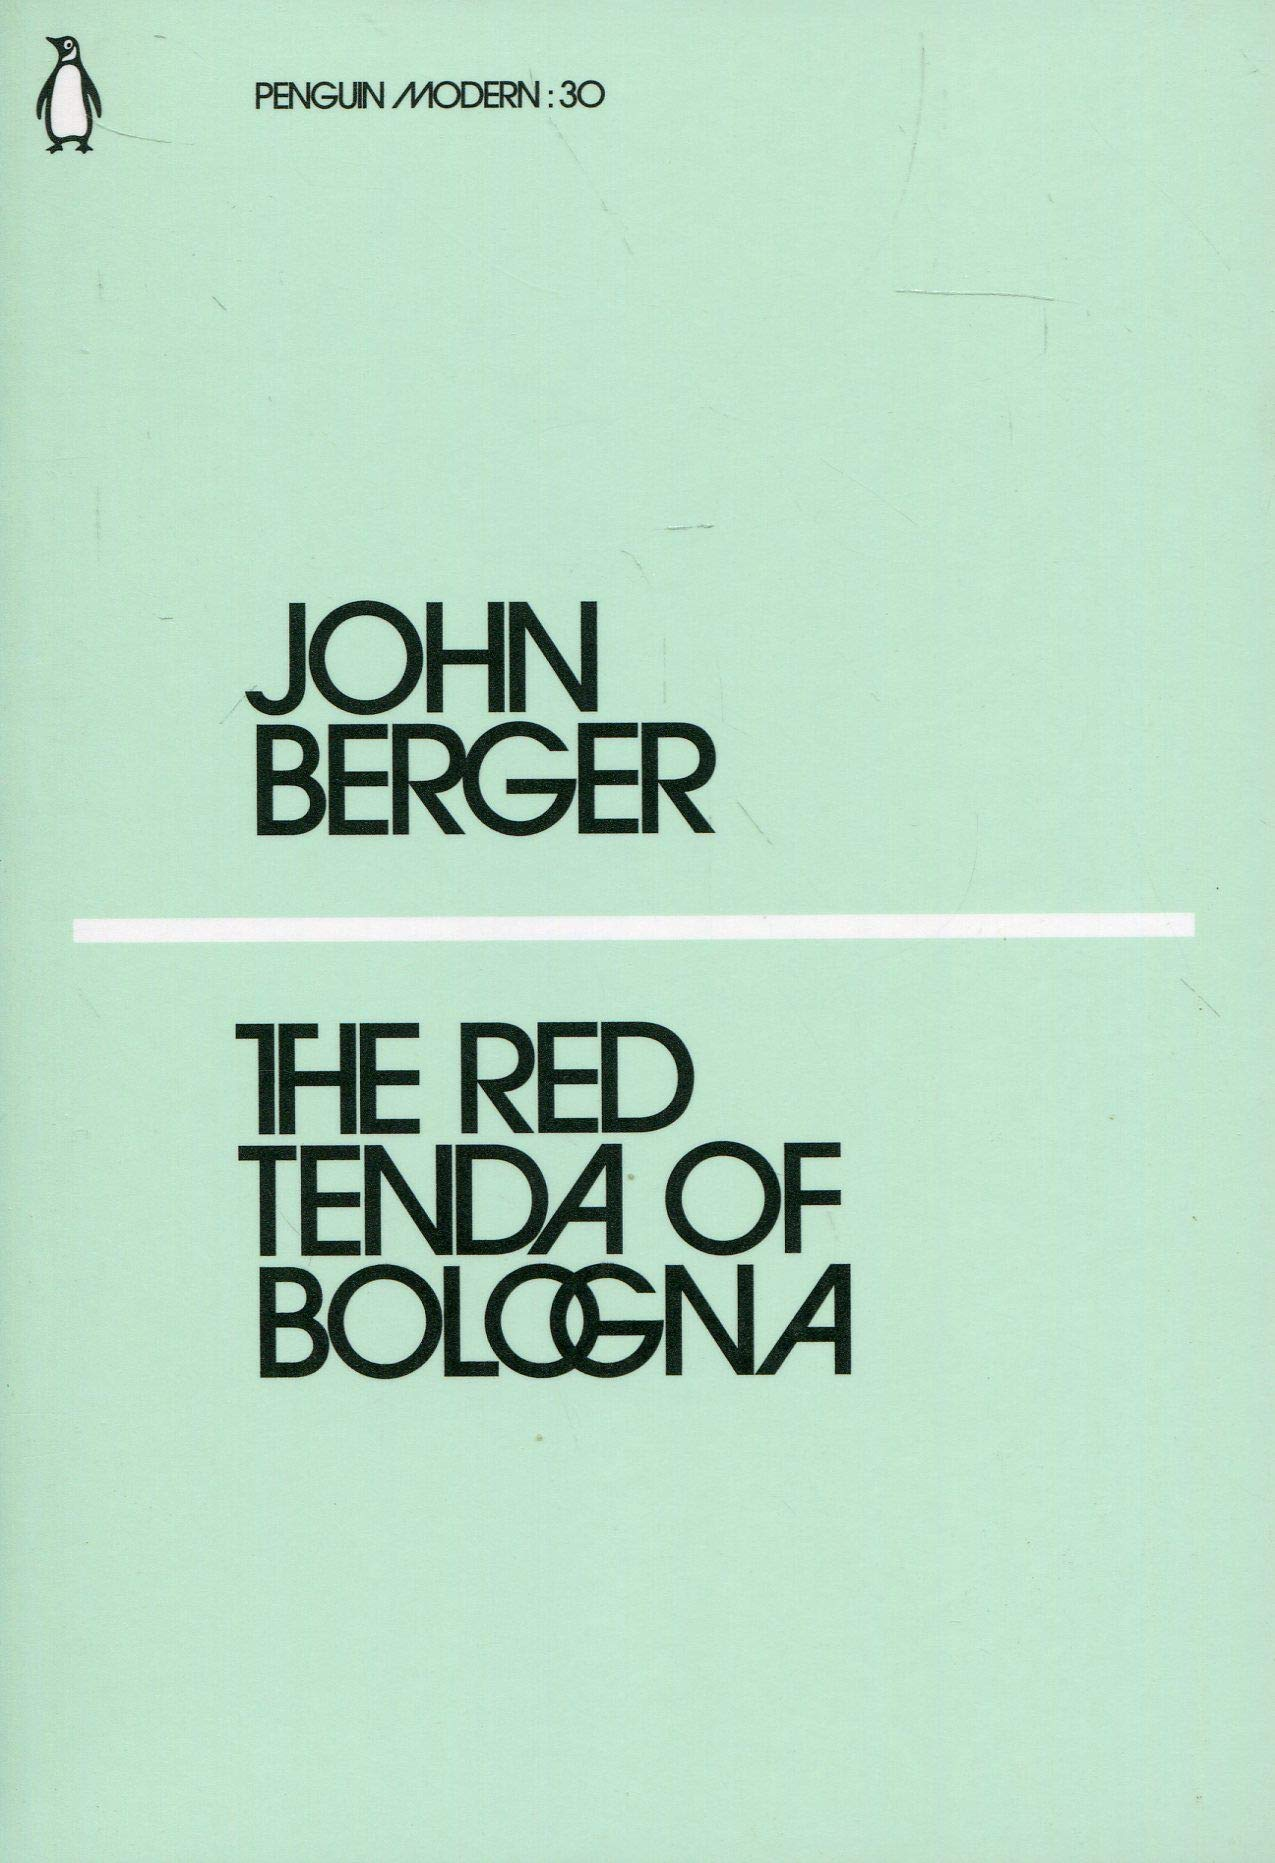 The Red Tenda of Bologna - By John BergerA dream-like meditation on memory, food, paintings, a fond uncle and the improbable beauty of Bologna, from the visionary thinker and art critic.